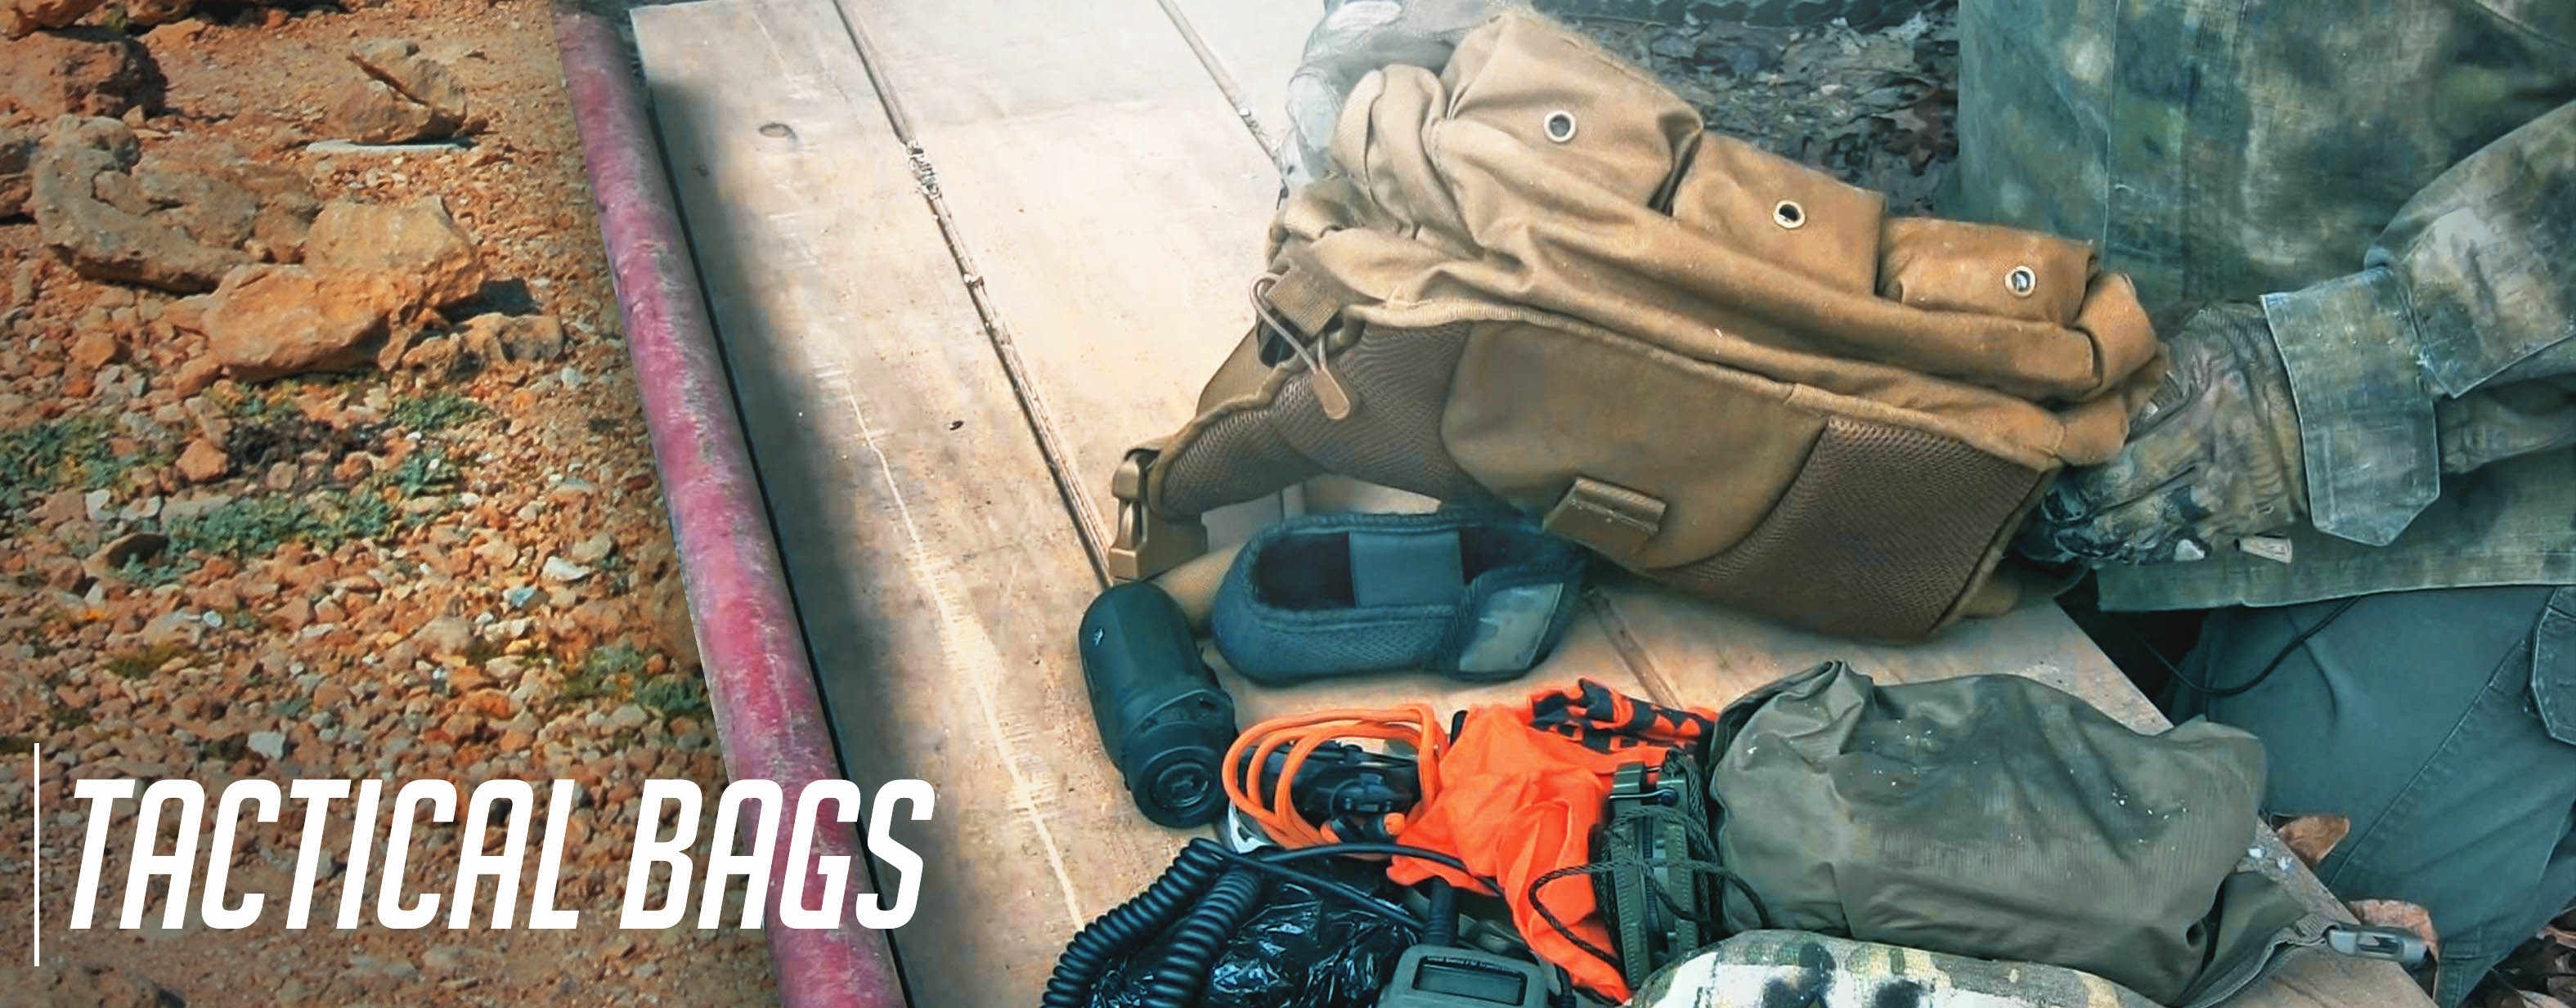 b37ef7f91b80 Bags - Tactical Bags - Tactical Asia - Philippines